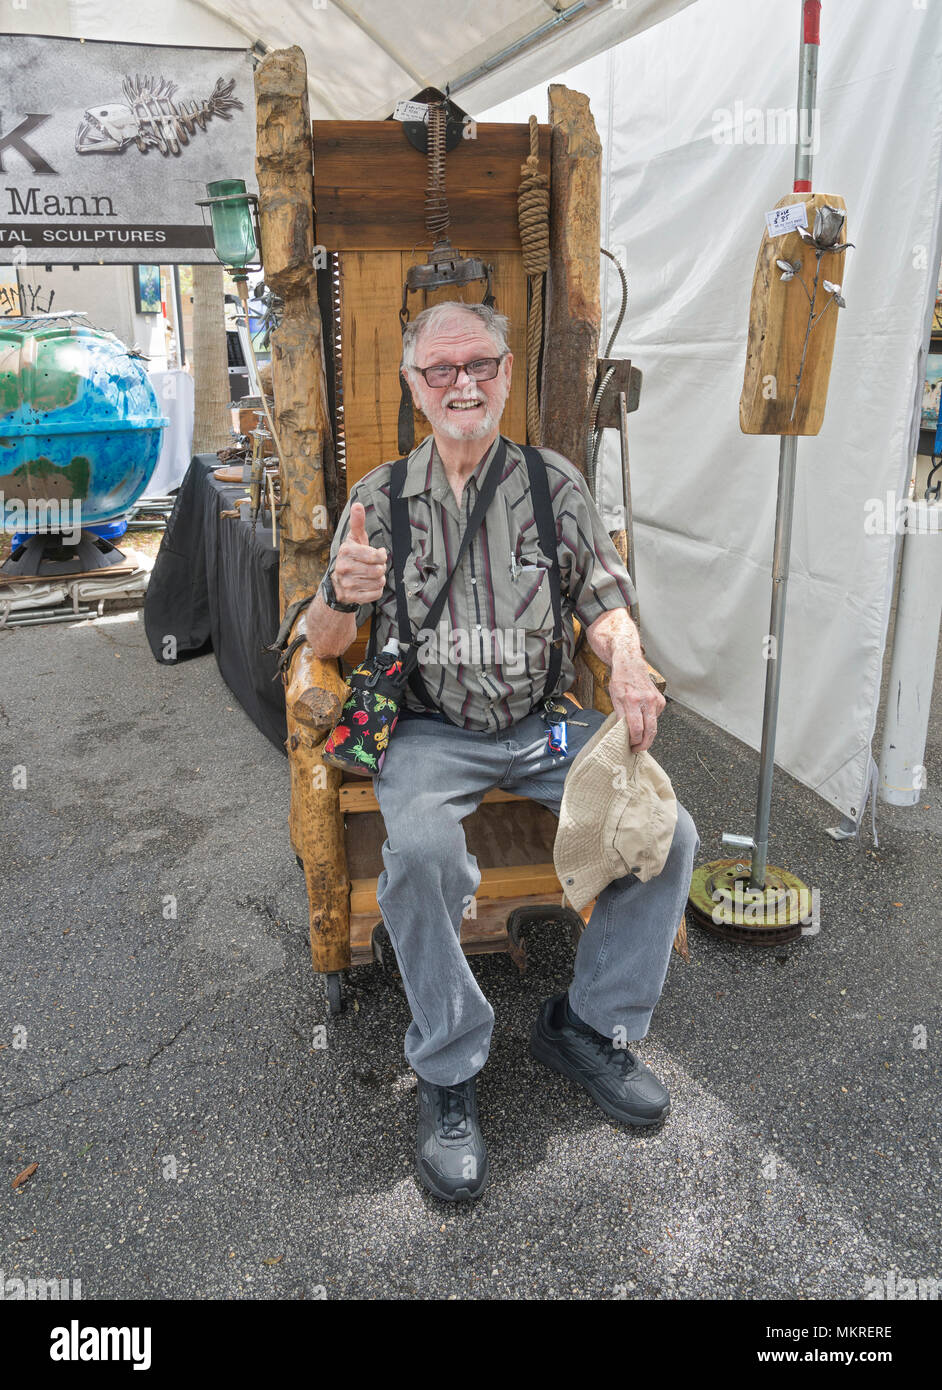 florida electric chair aeron review 2017 spring festival in gainesville features a variety of expression and experiences man tries out wooden creation for sale